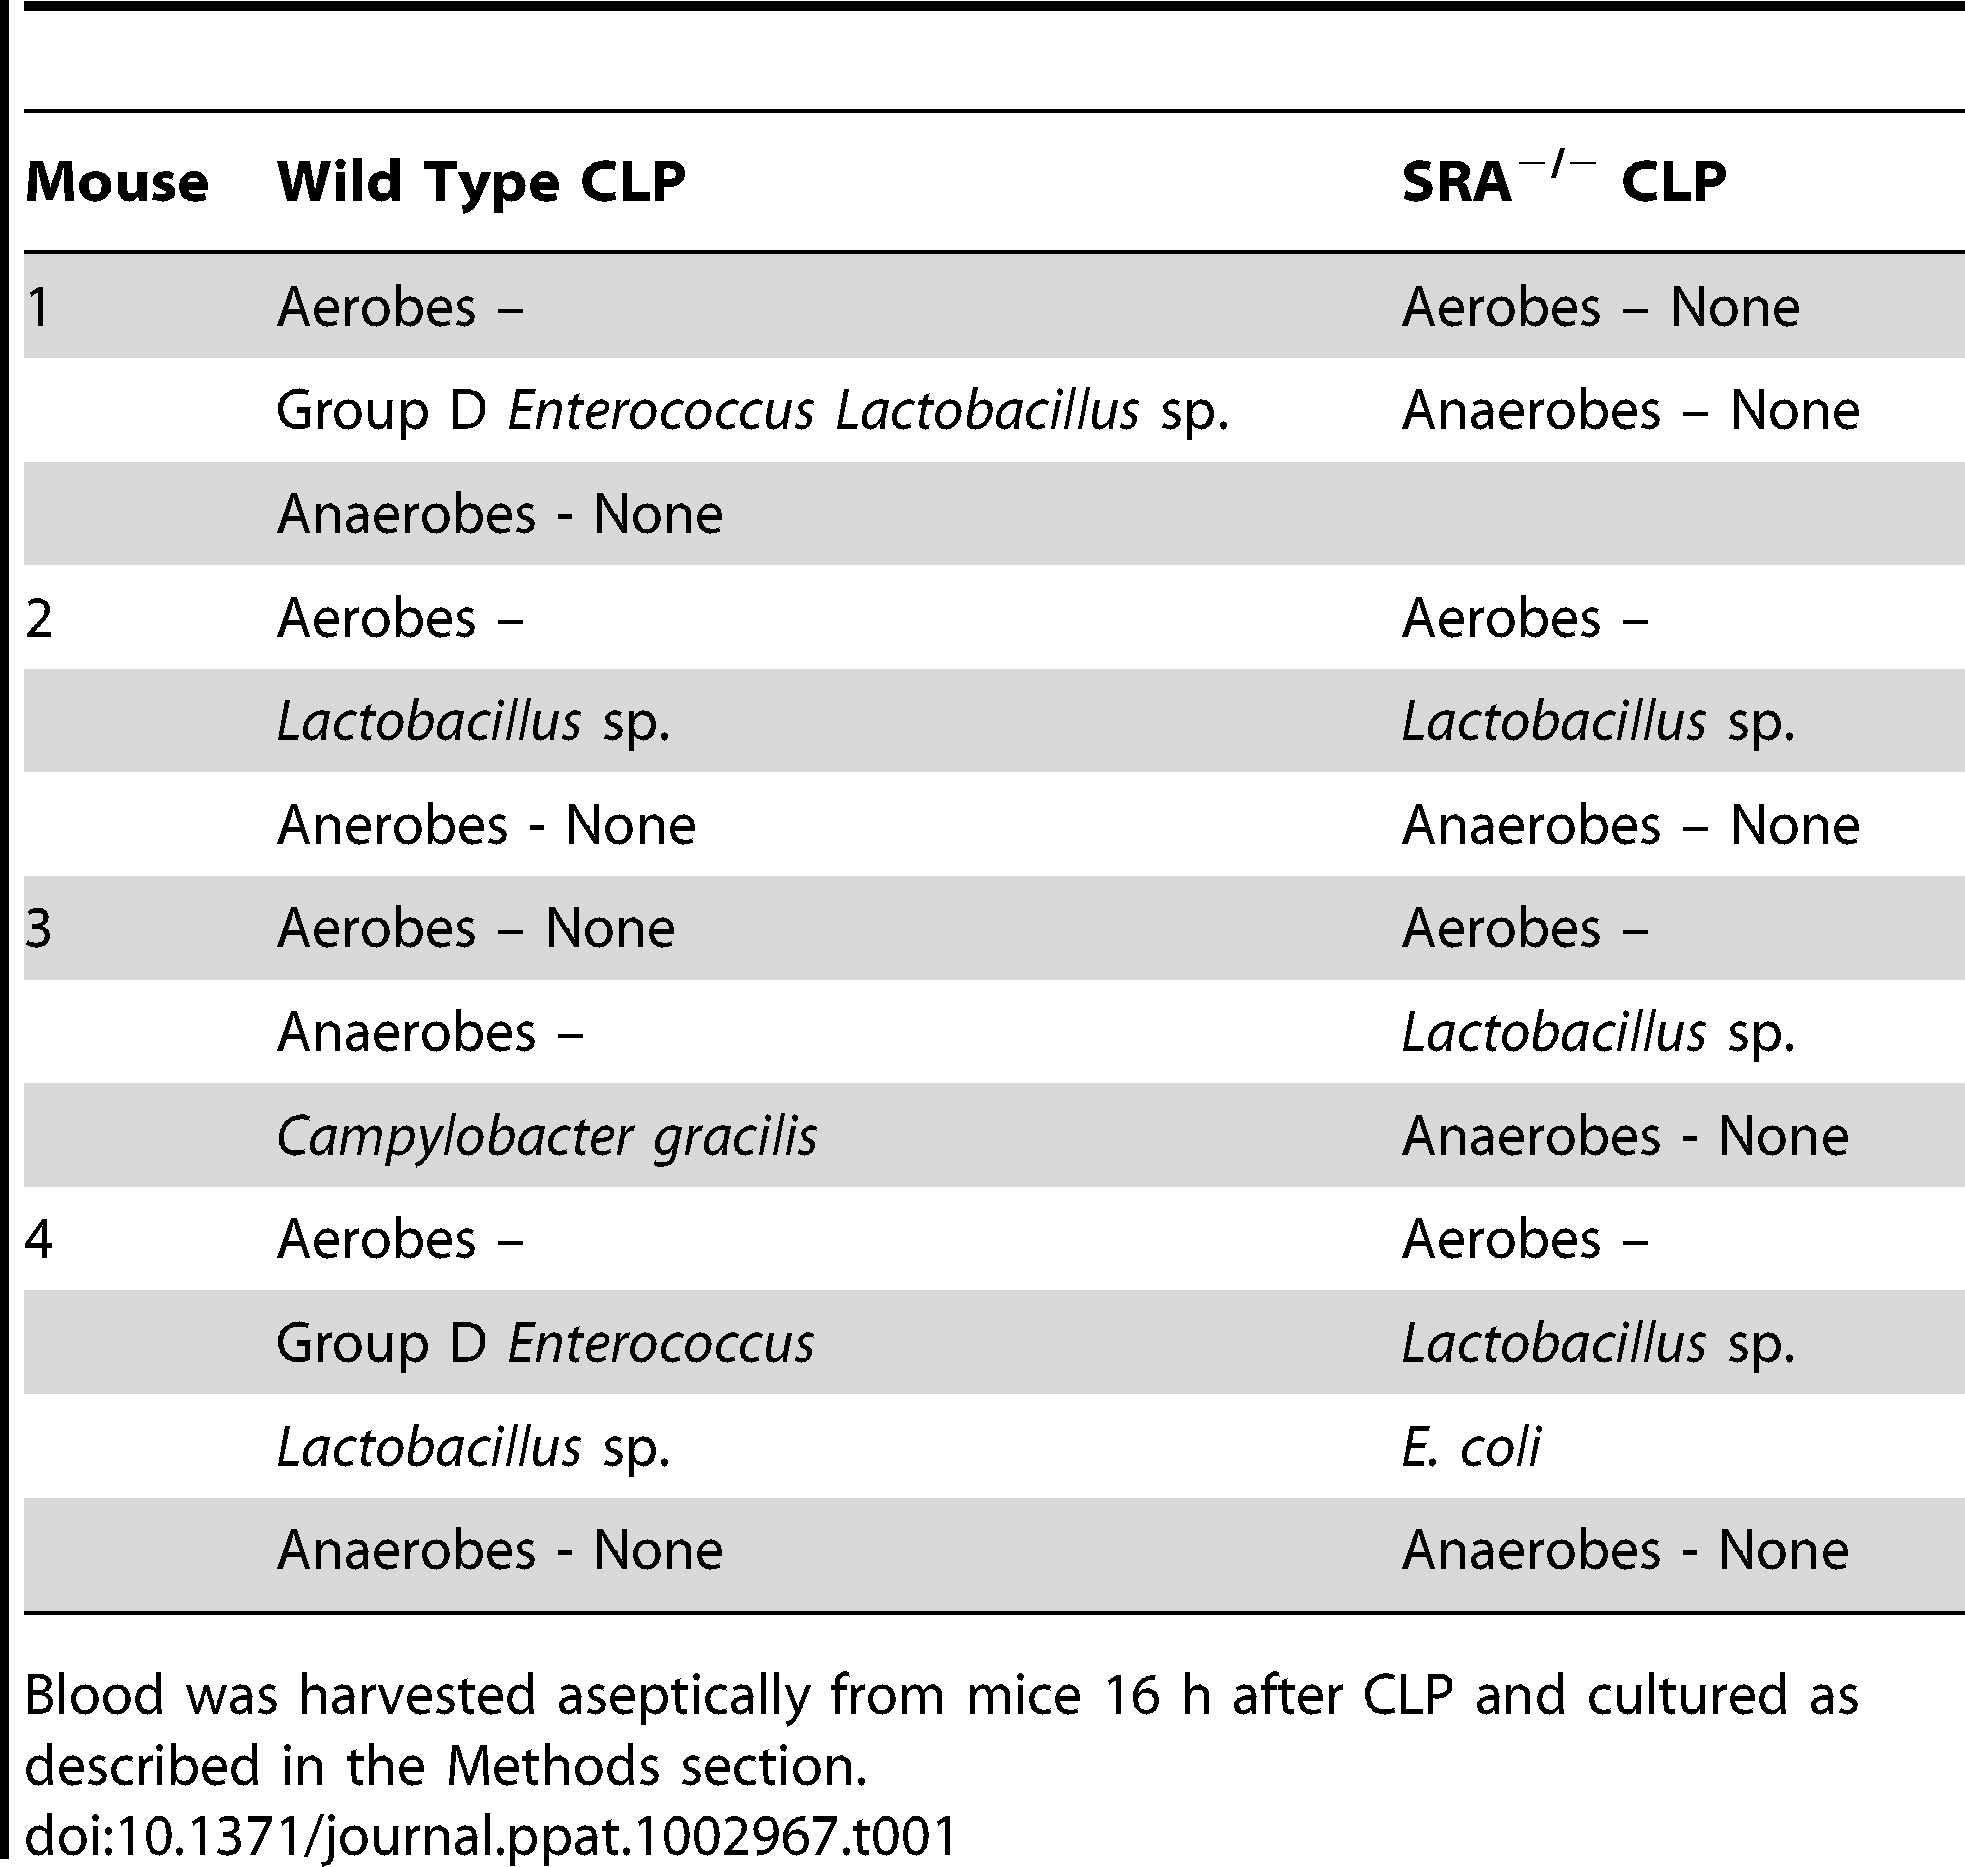 Comparison of bacterial content and growth characteristics of blood from wild type and SRA<sup>−/−</sup> wild mice 16 hours after CLP sepsis.